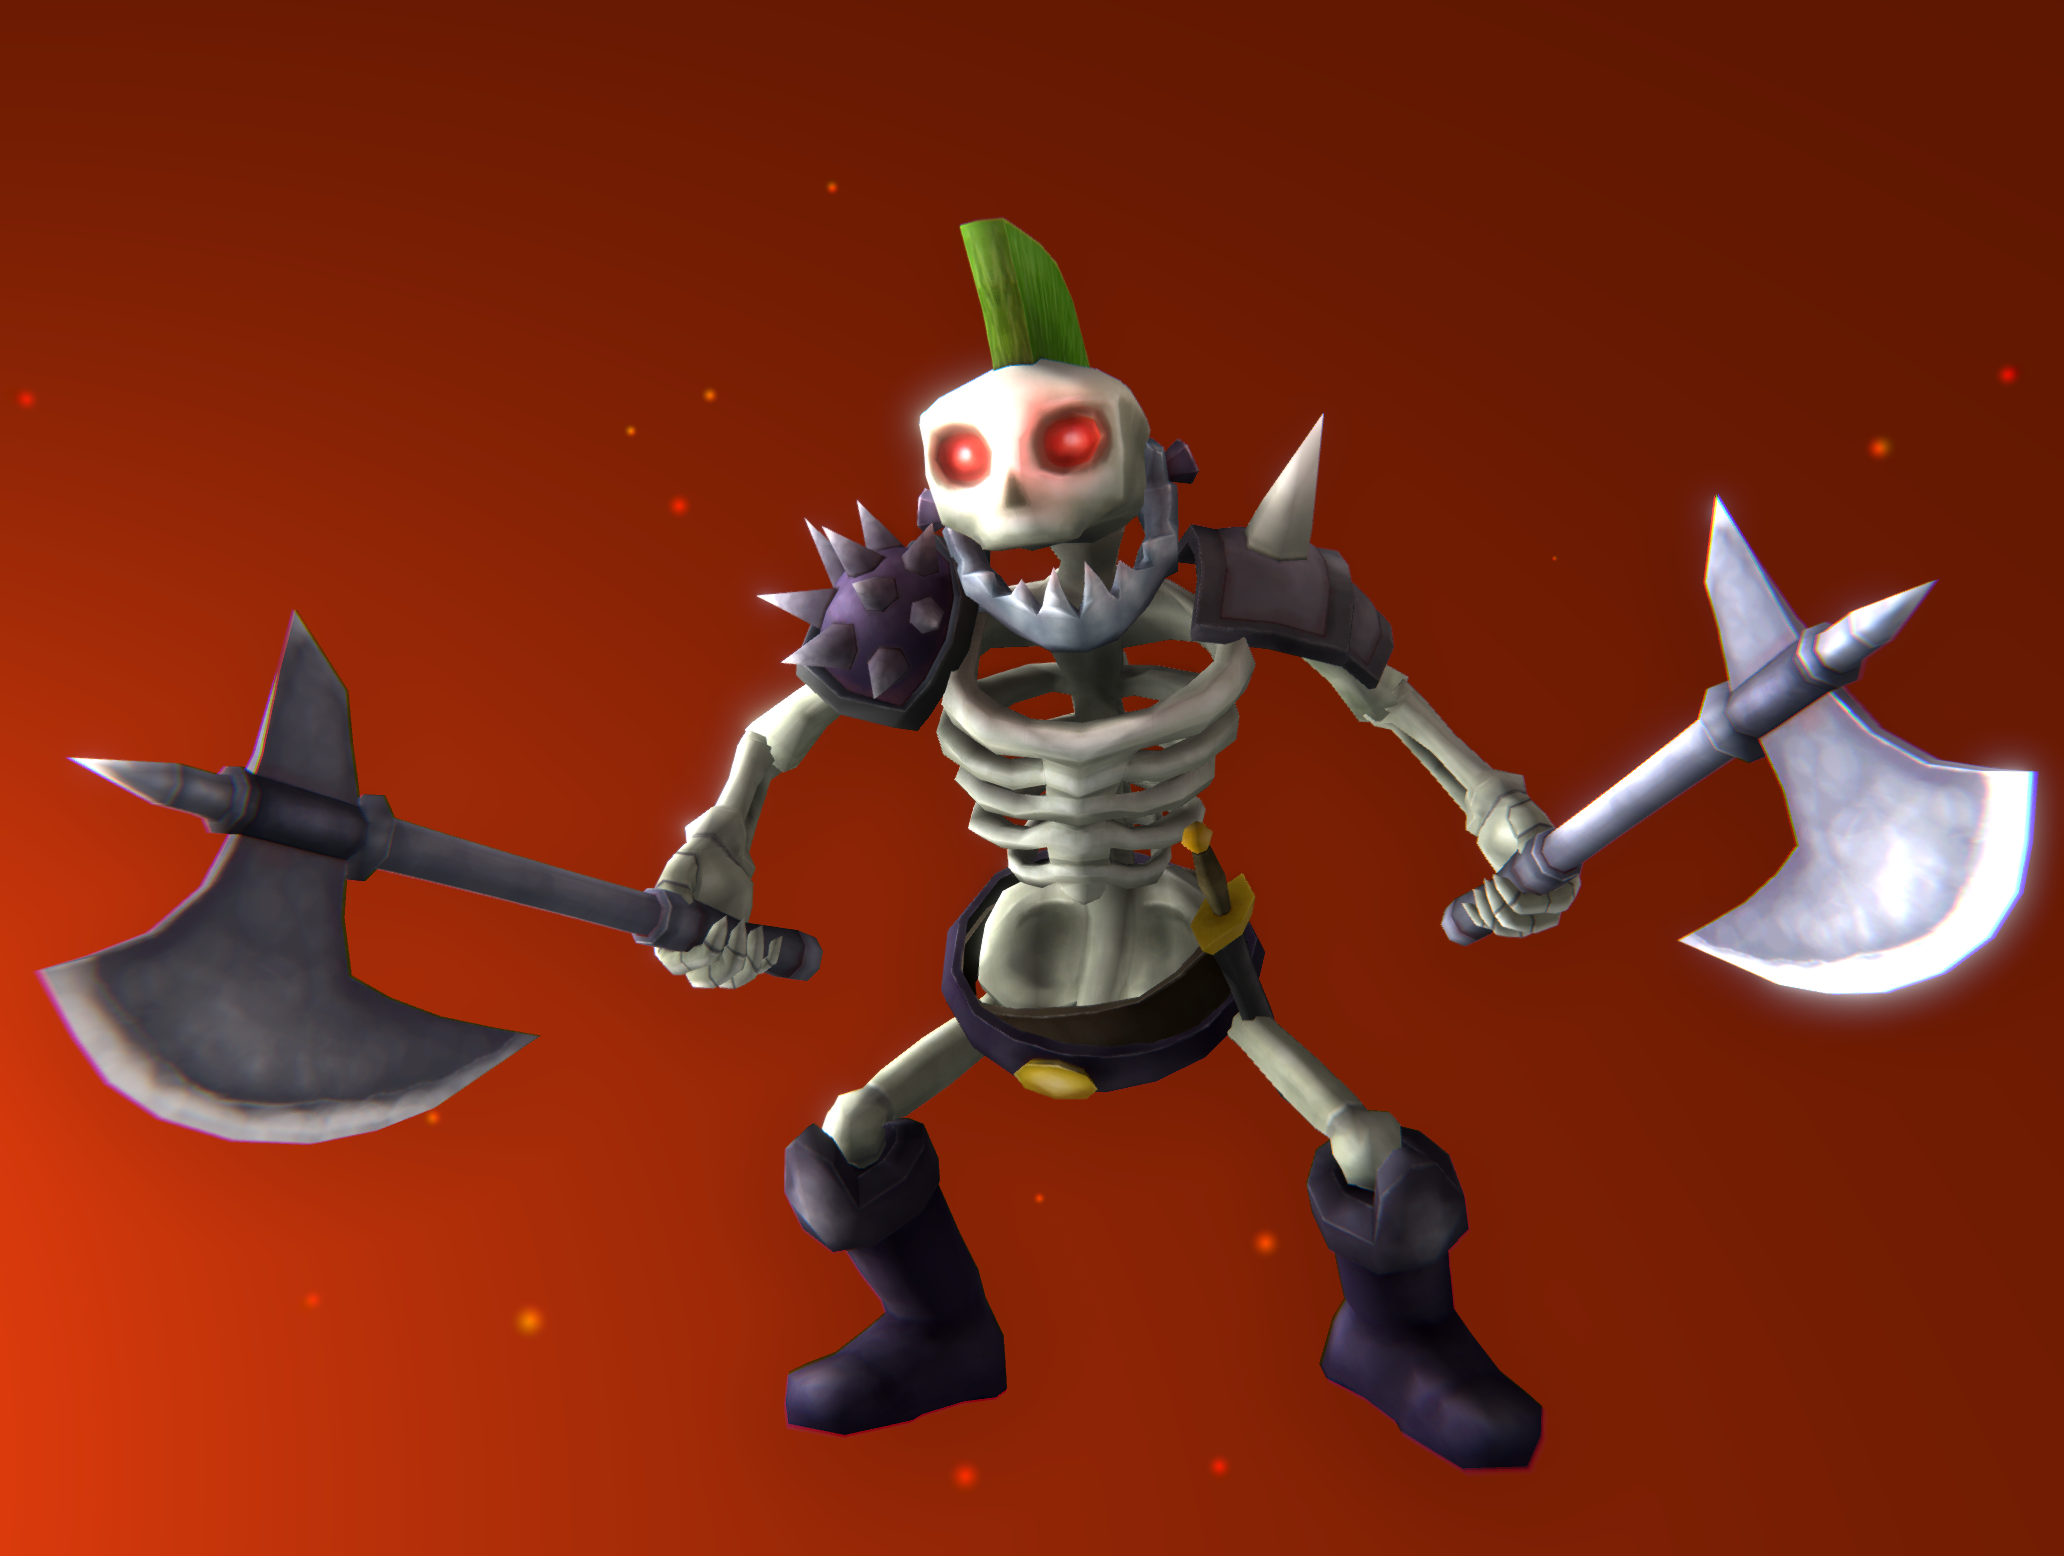 Skeleton Outlaw - FREE at Unity Asset Store!